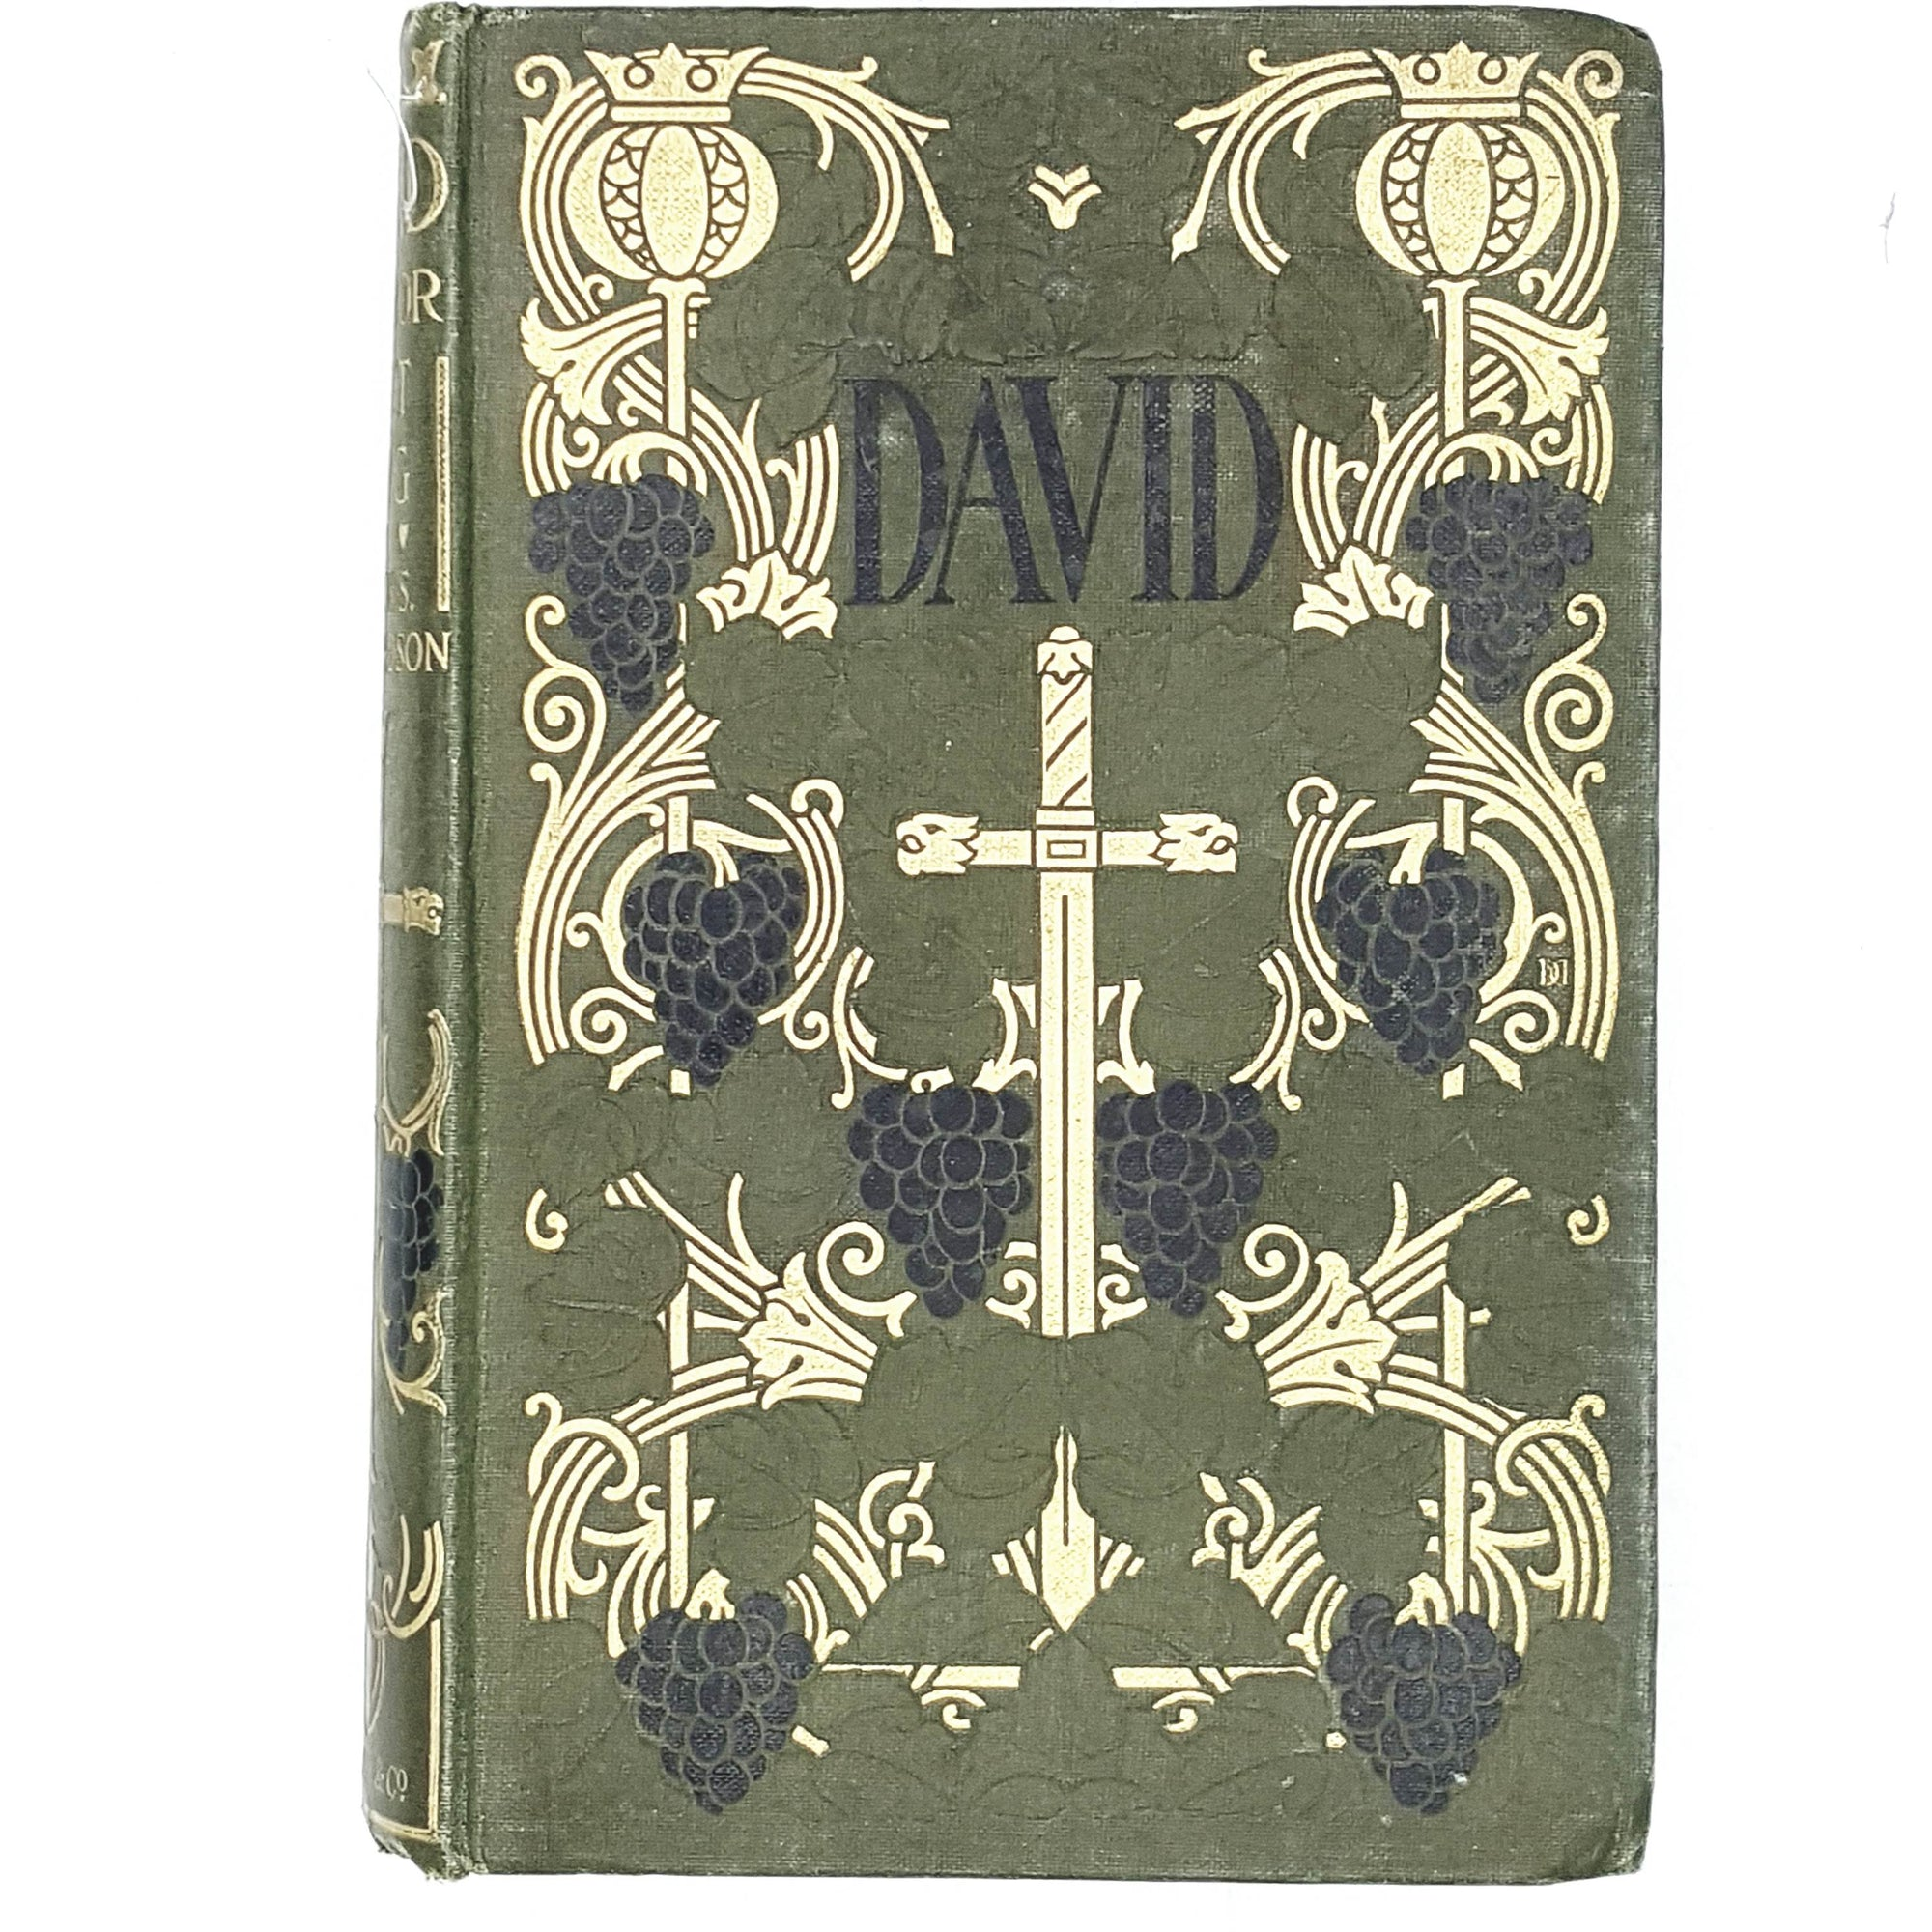 Illustrated David Warrior Poet King by Rev. W. S. Richardson 1908